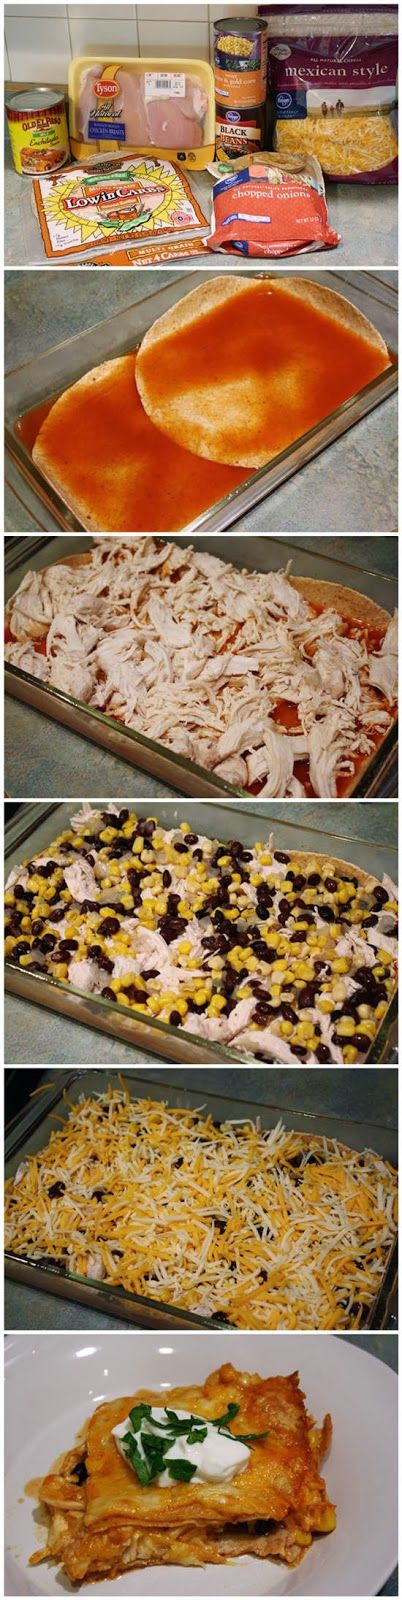 Skinny Chicken Enchilada Casserole  @marylandwright This is the one I'm trying tonight.  Looks idiot proof!